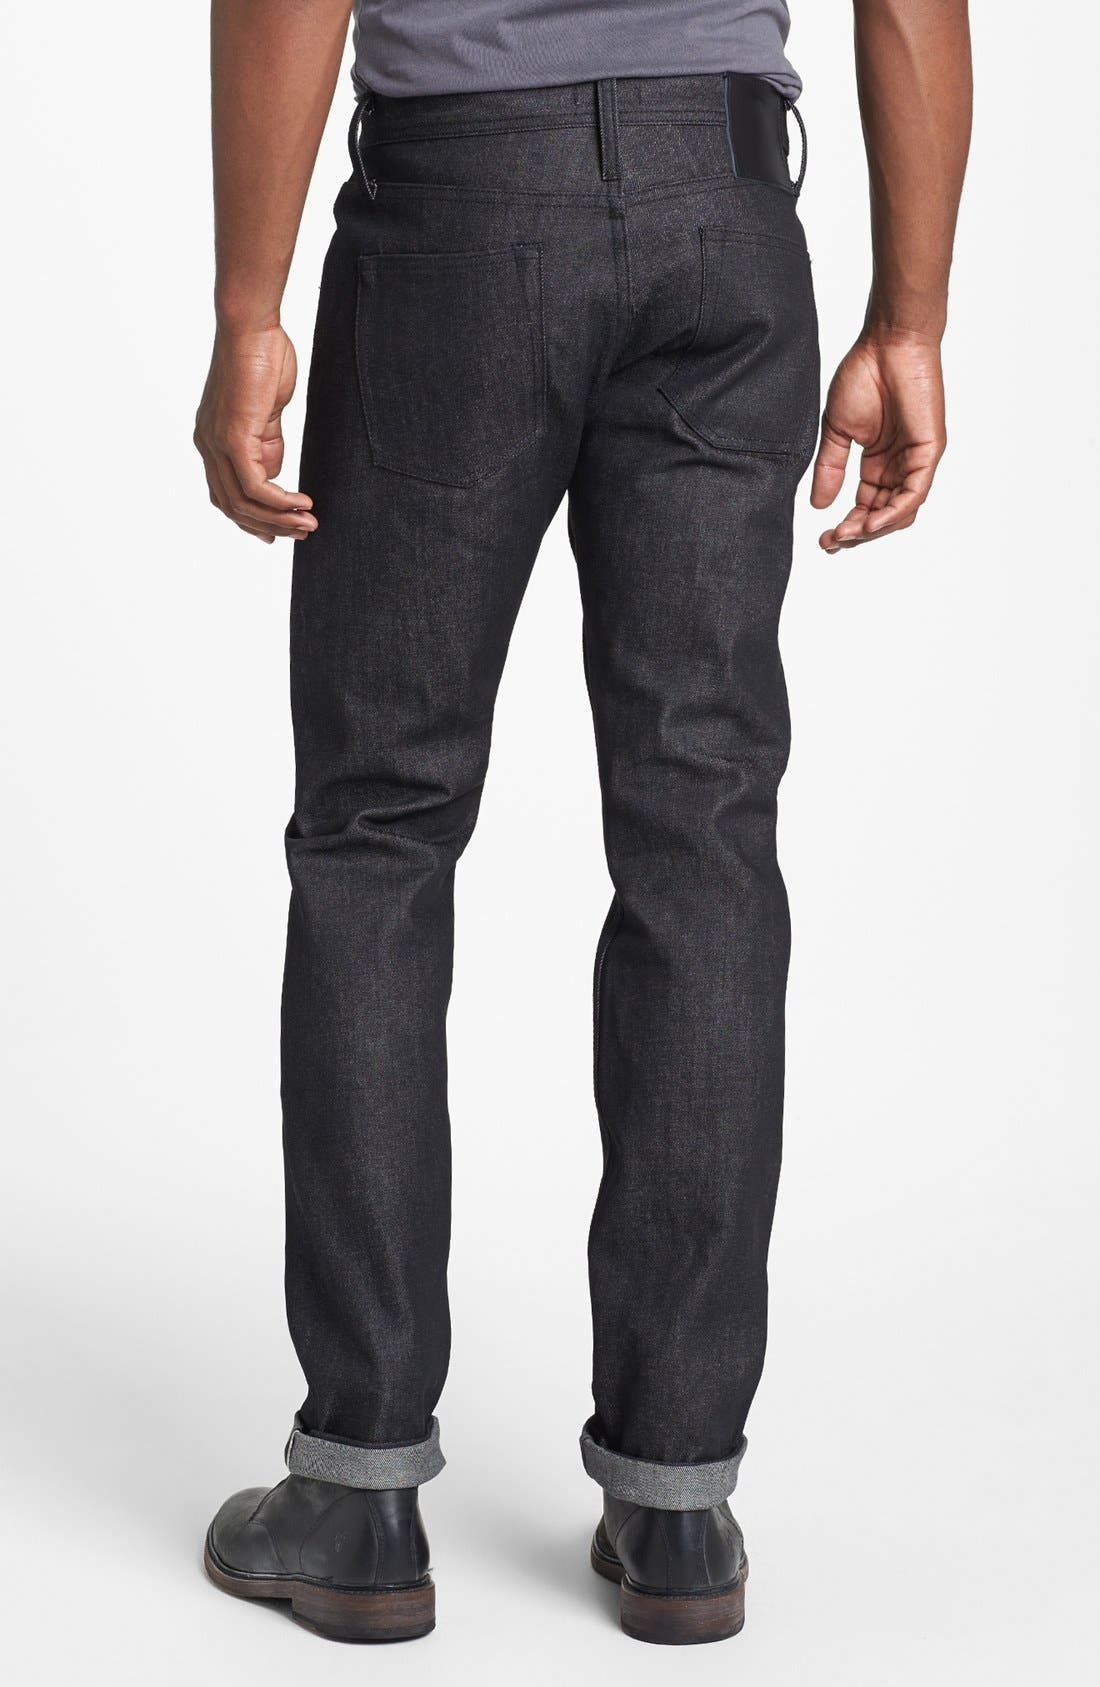 Main Image - The Unbranded Brand Skinny Fit Selvedge Jeans (Black)